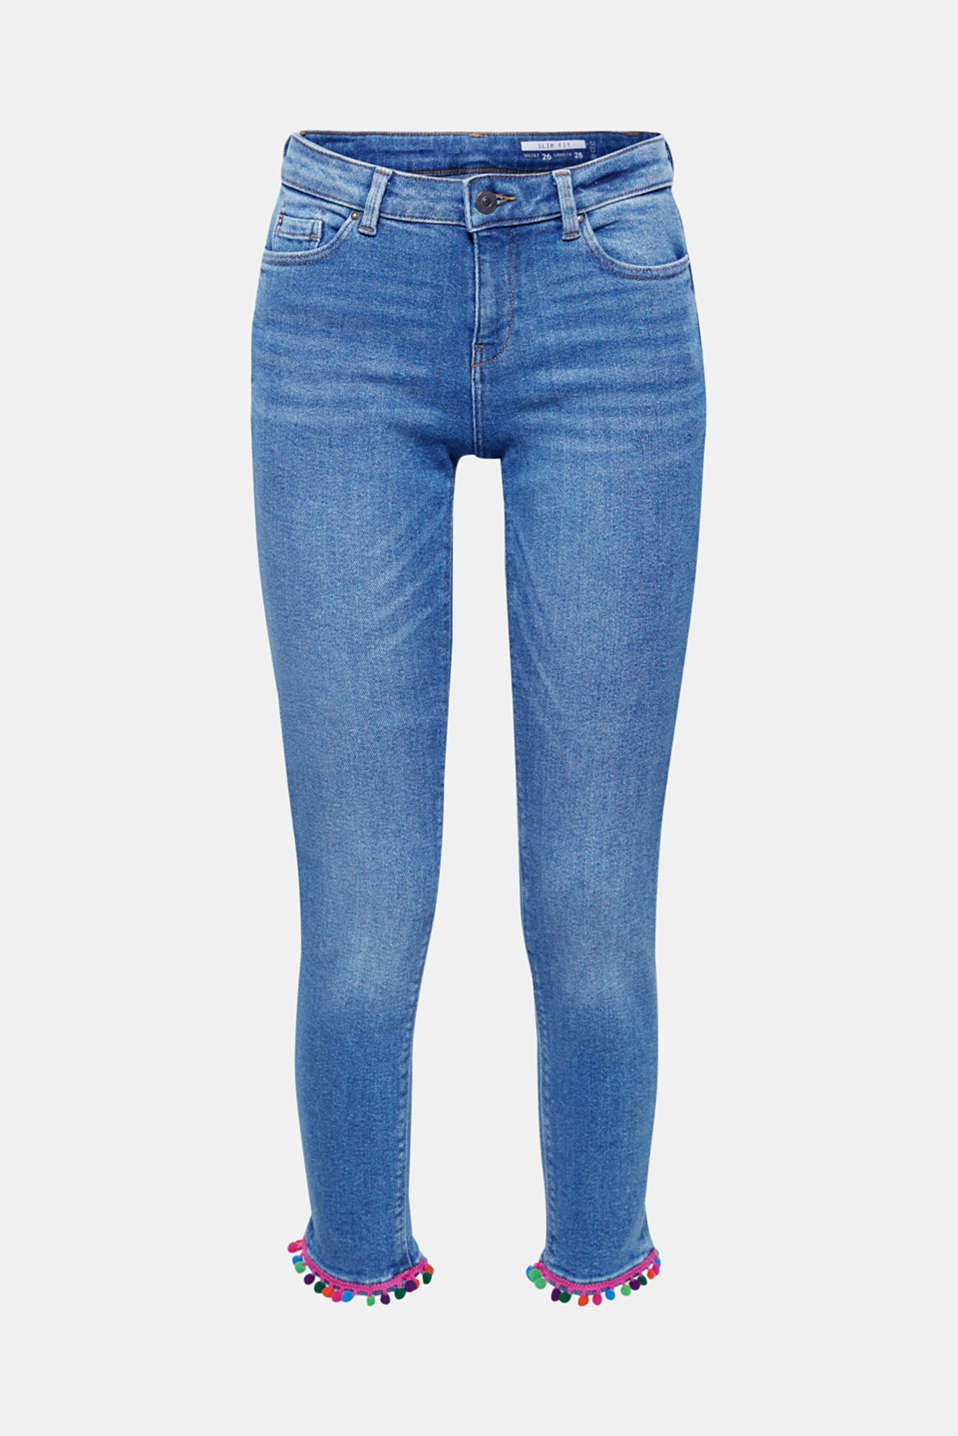 Colourful mini pompoms on the leg hems give these stretch jeans their summery festival flair!